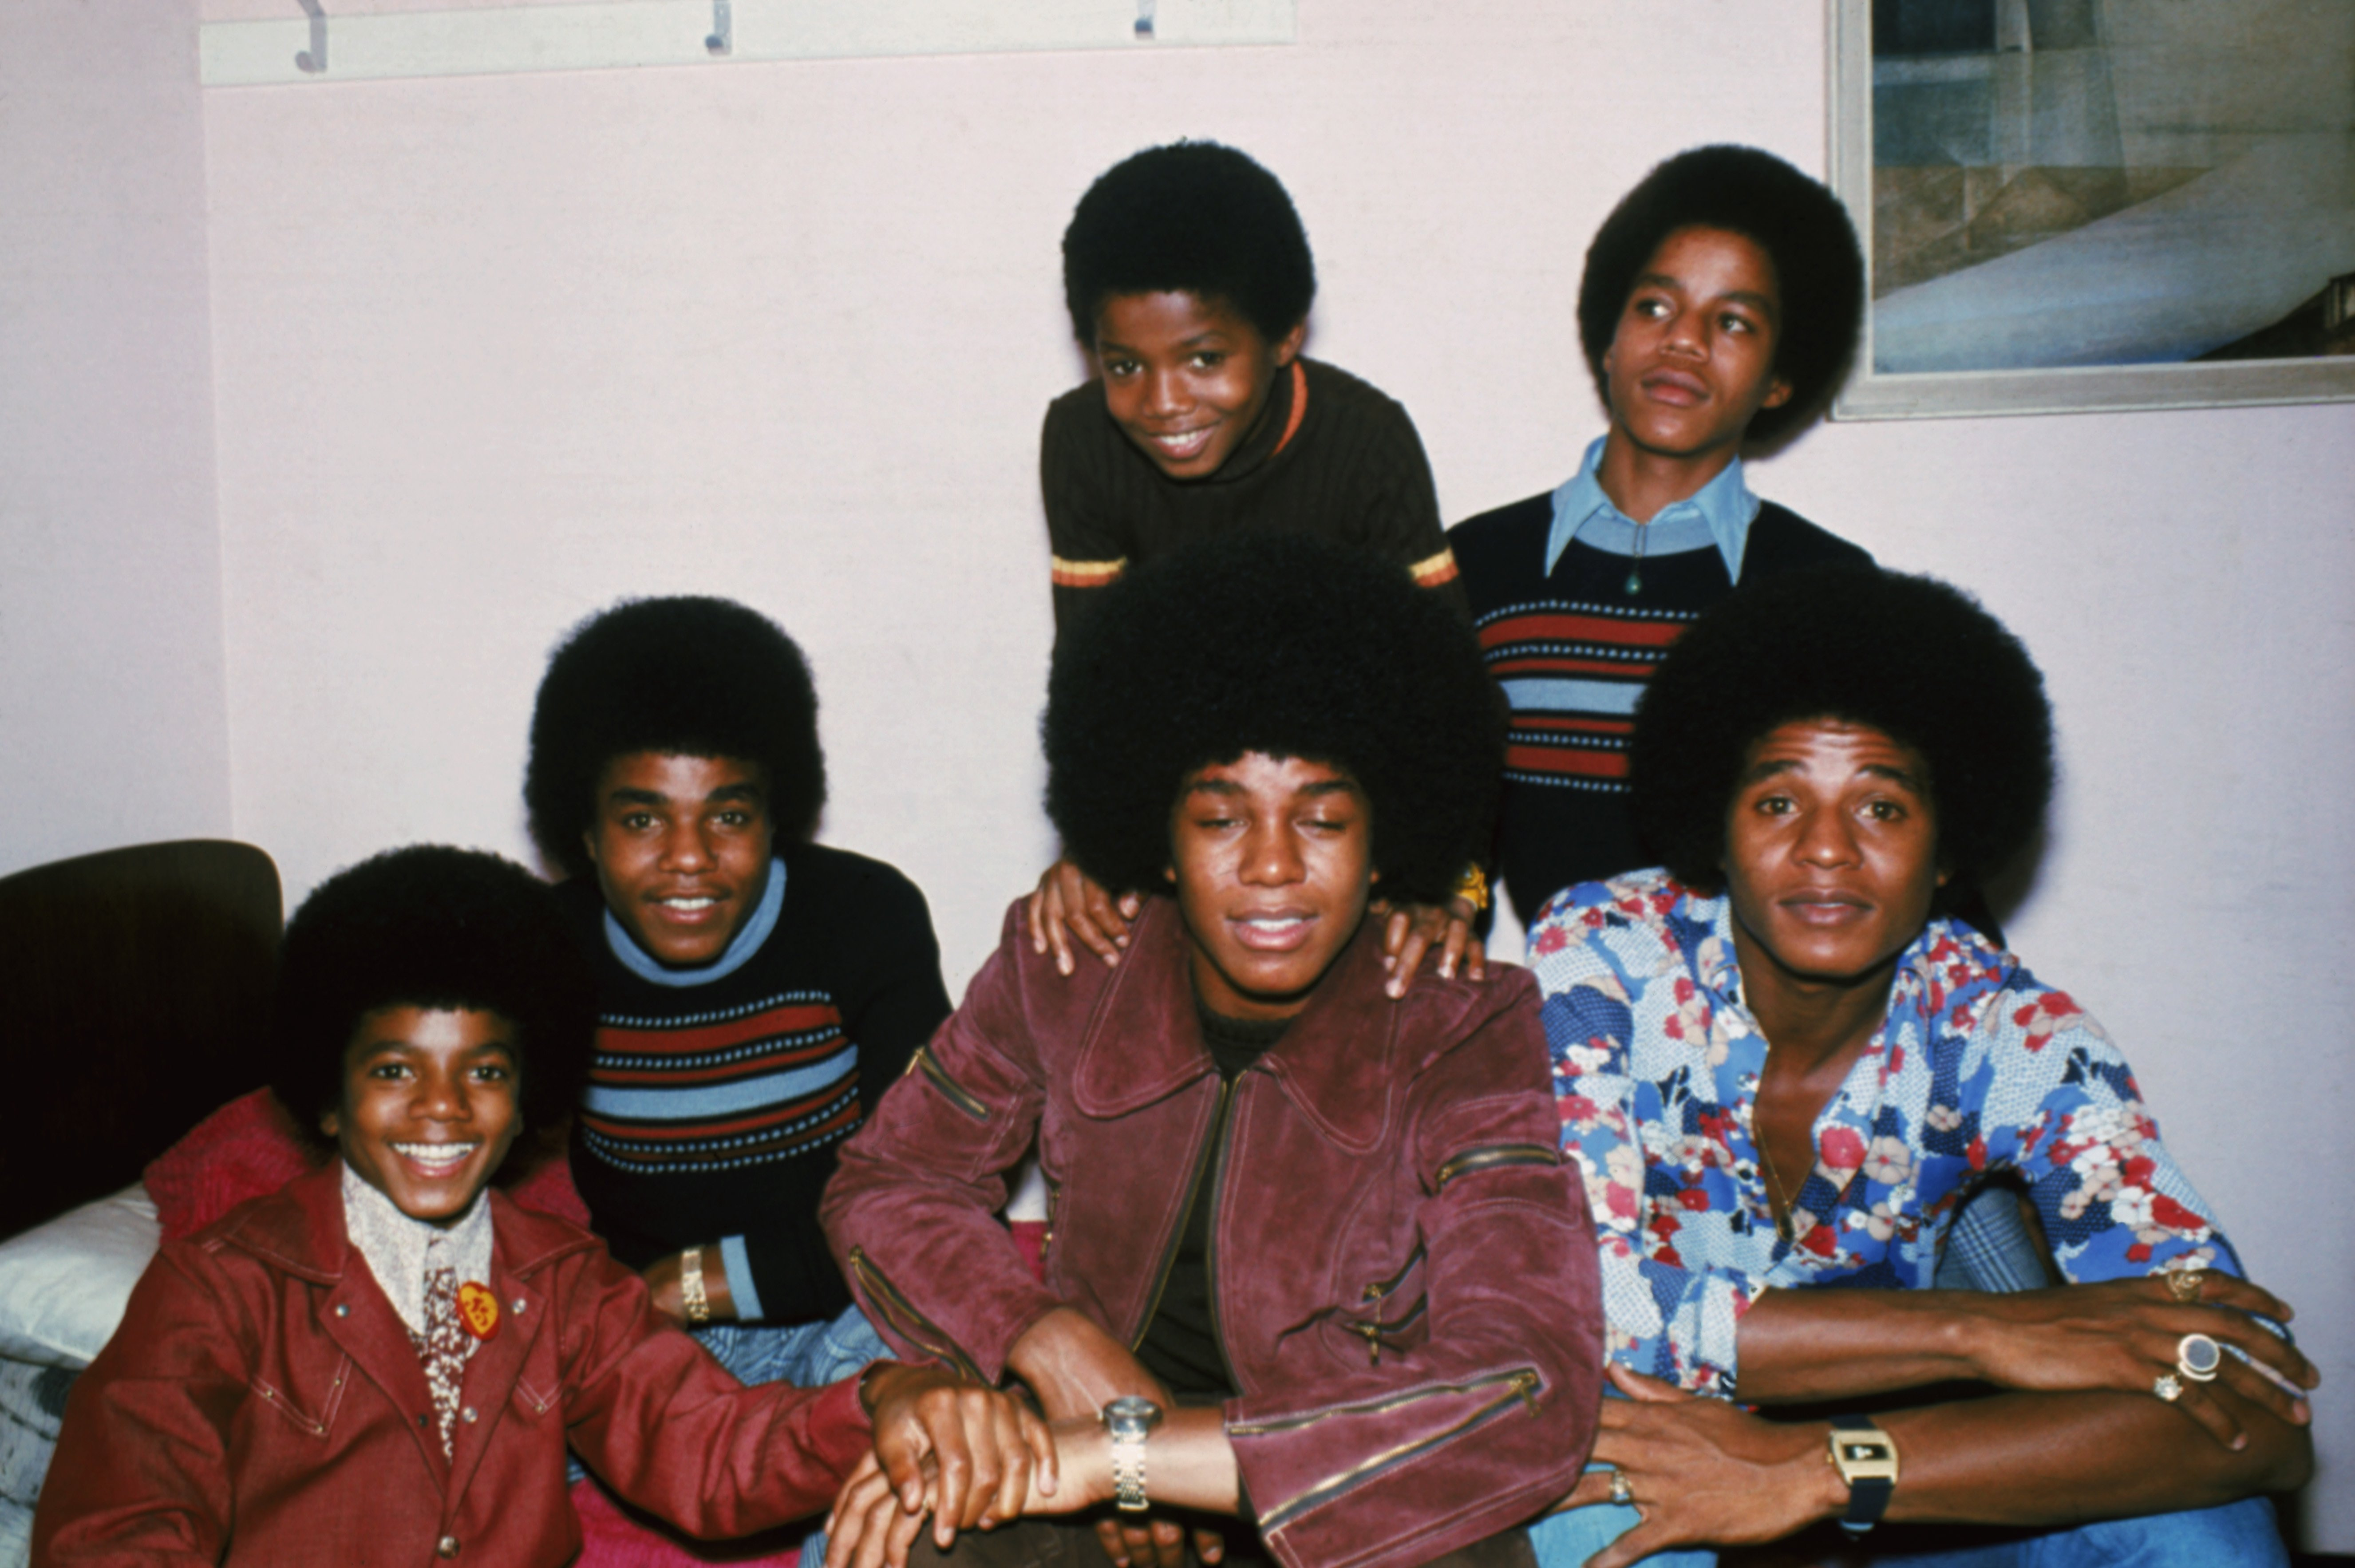 The Jackson brothers, Jackie, Tito, Jermaine, Marlon, Michael and Randy in London, in 1972 | Source: Getty Images